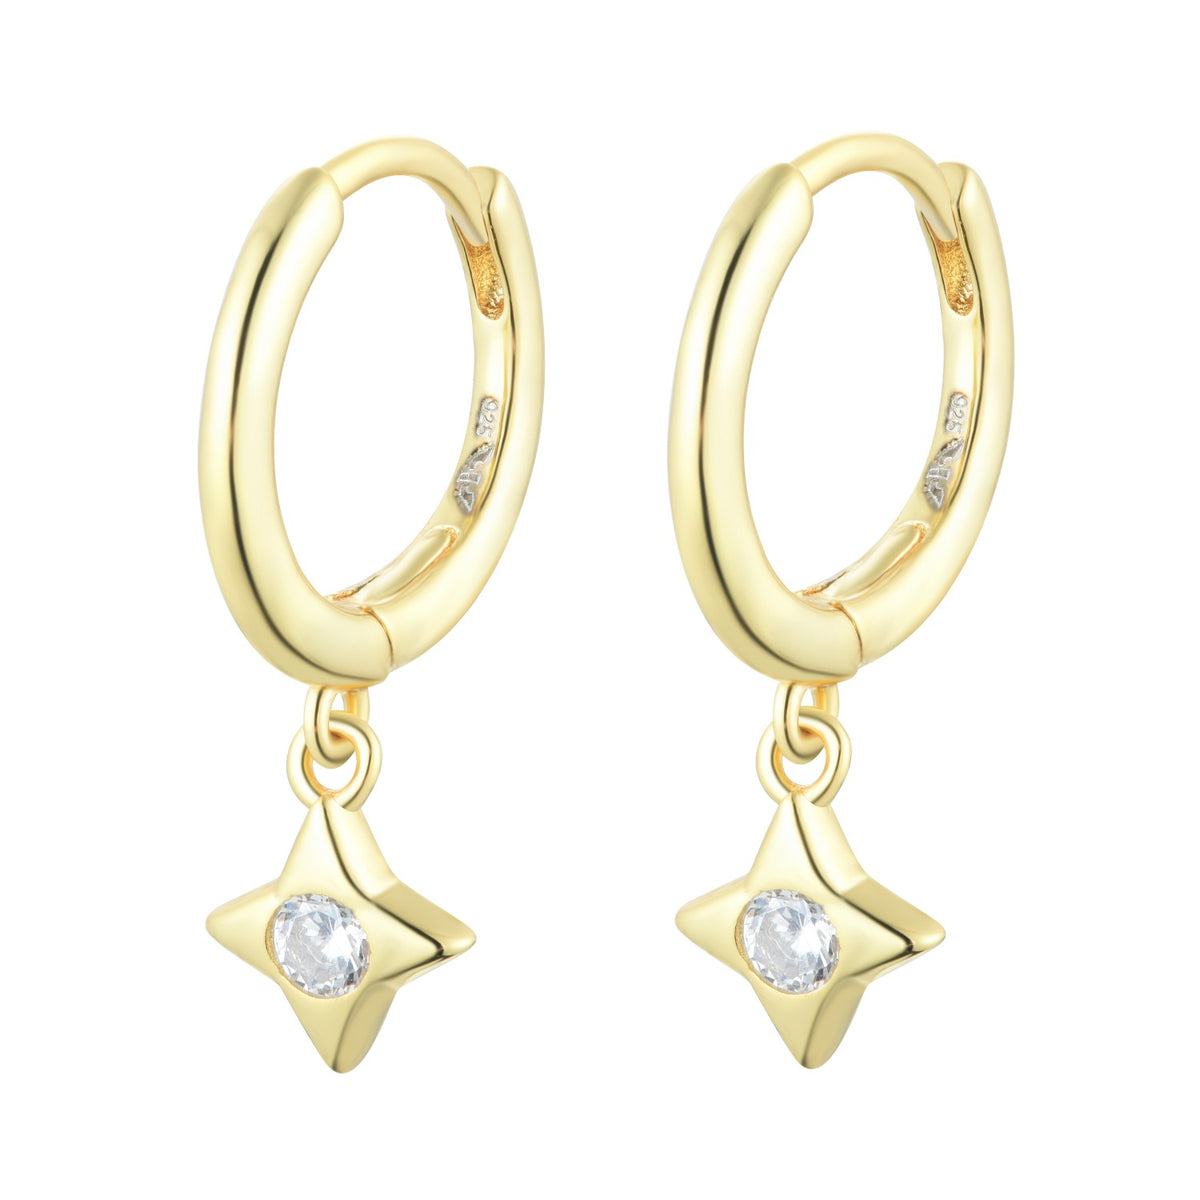 Fortuna | Pistoia Earrings | 925 Silver | White CZ | 18K Gold Plated